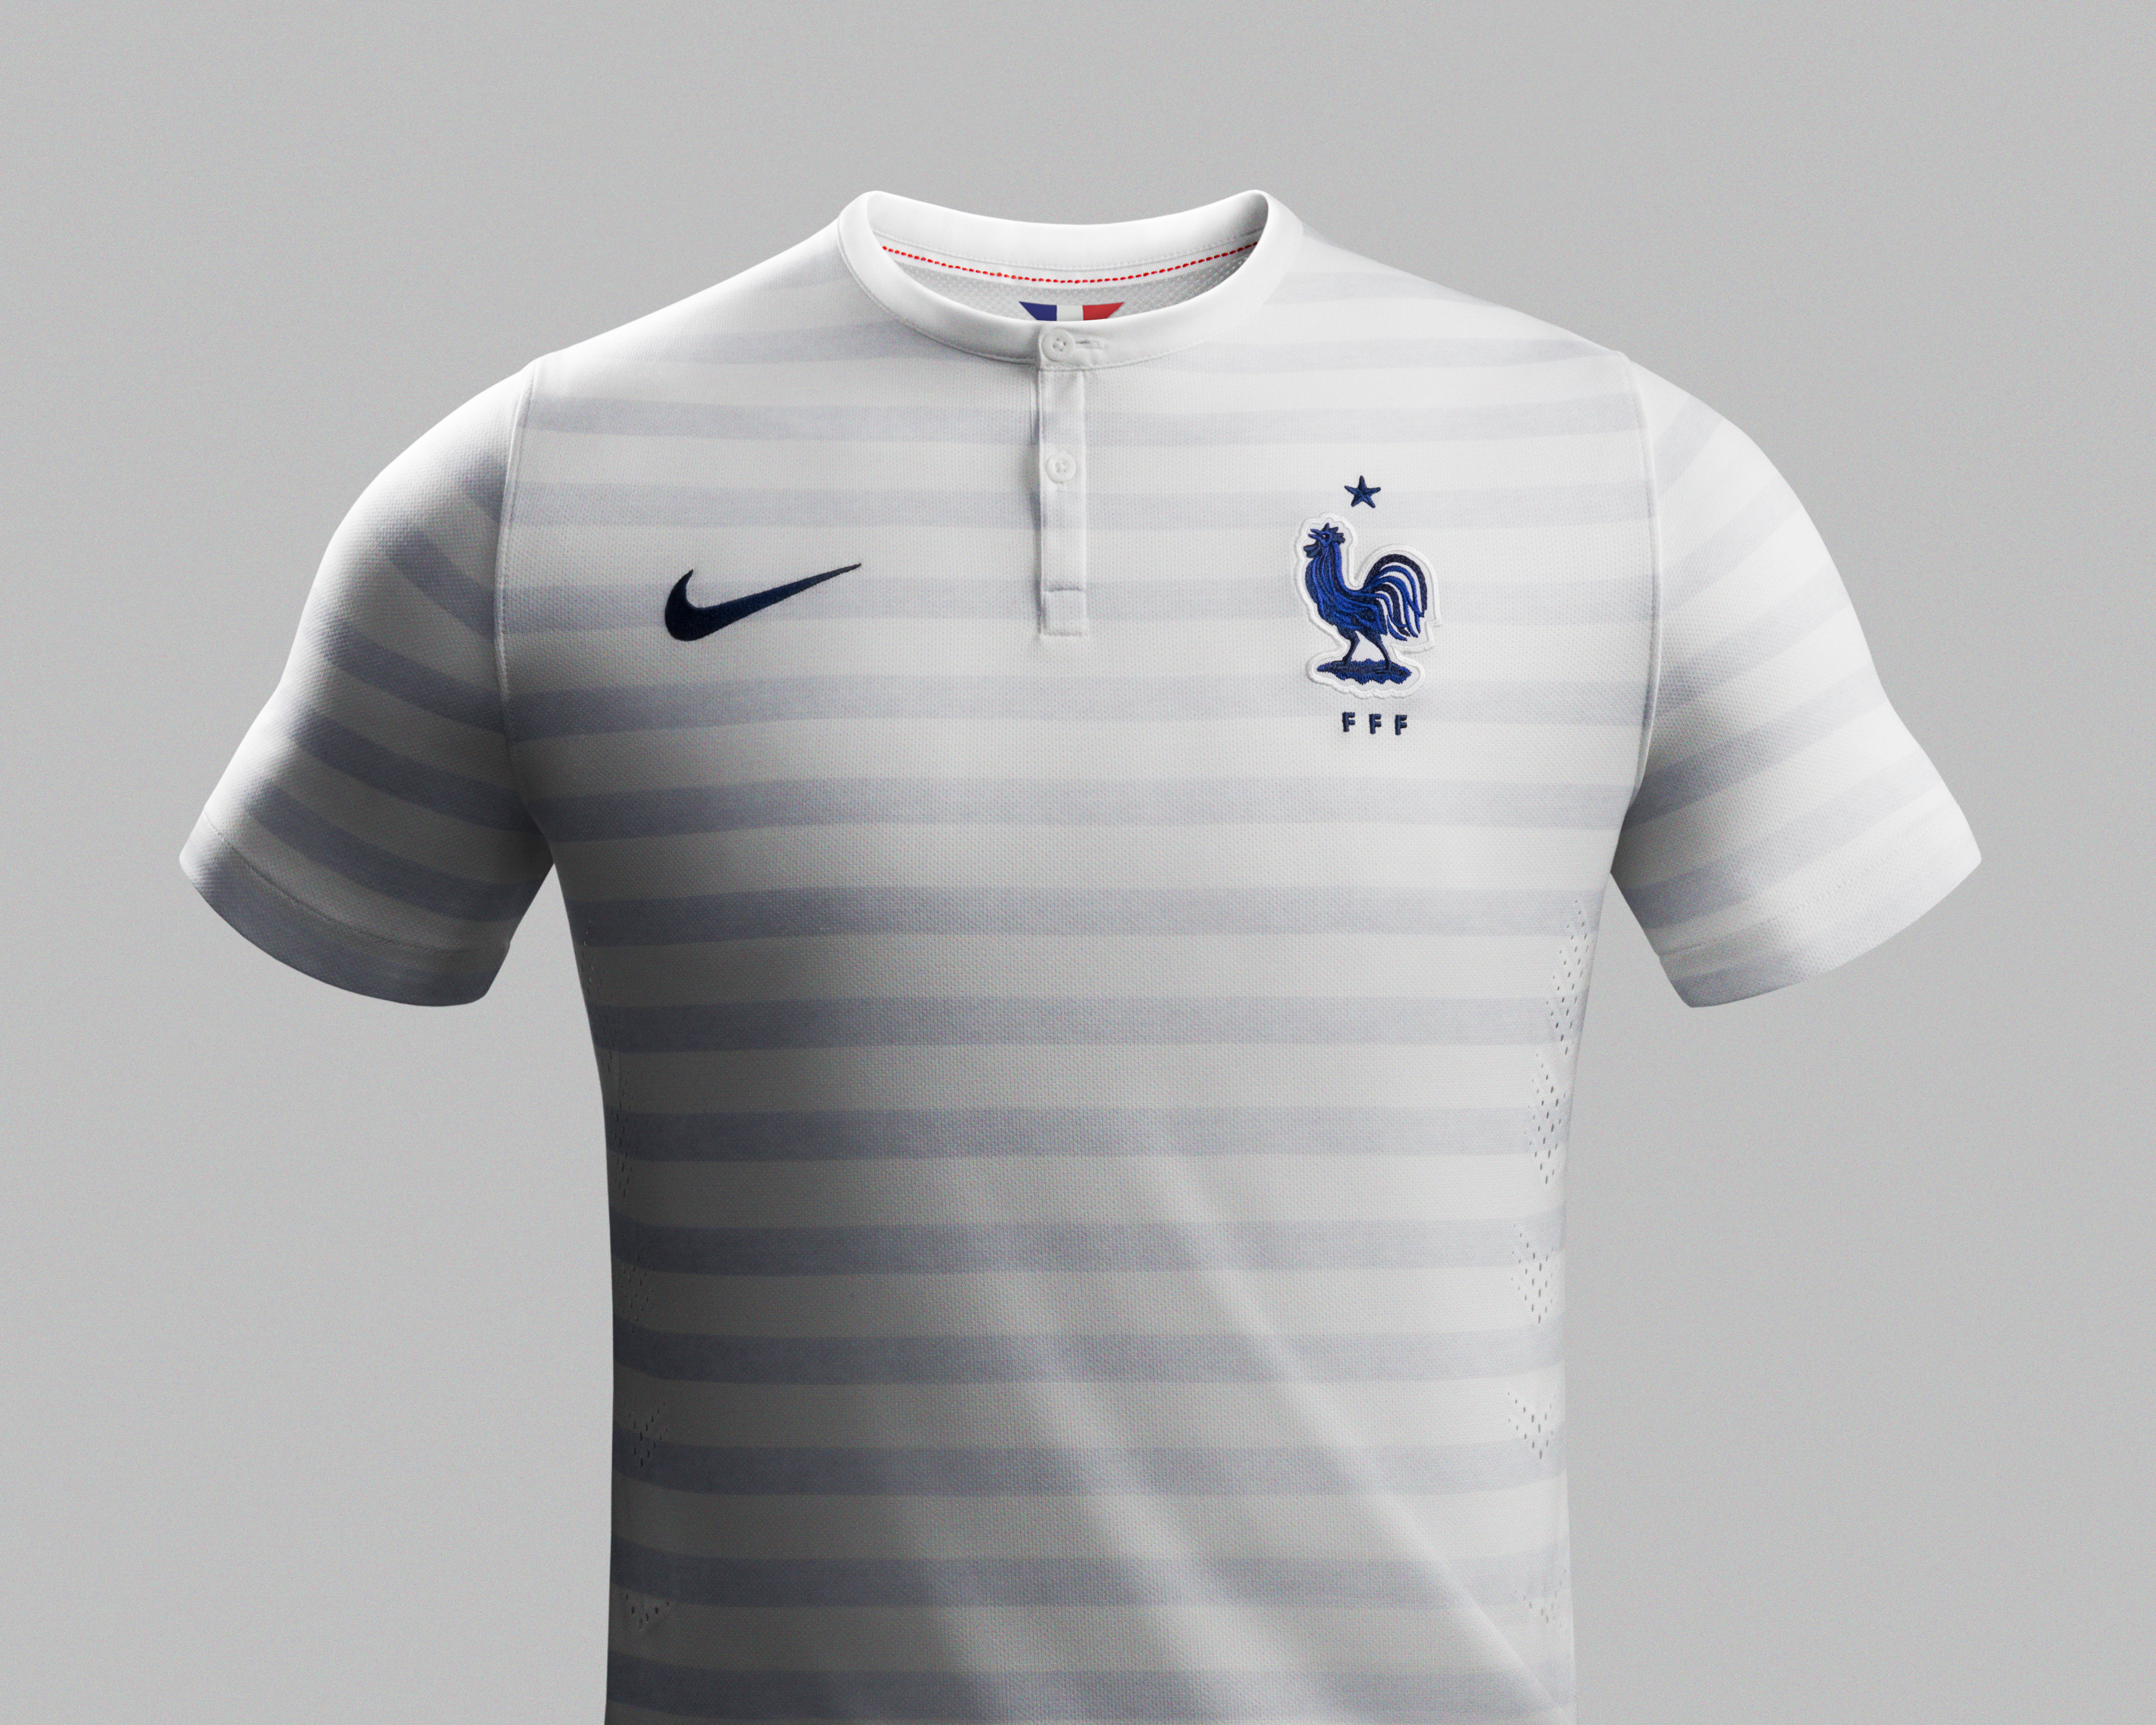 Soccer fans looking for a sure-fire way to show their team spirit can look no further than our lineup of French soccer jerseys from respected sports brands like adidas, Nike and Puma. Be proud to wear top-of-the-line French National Team Jerseys on Jerseys on any occasion.